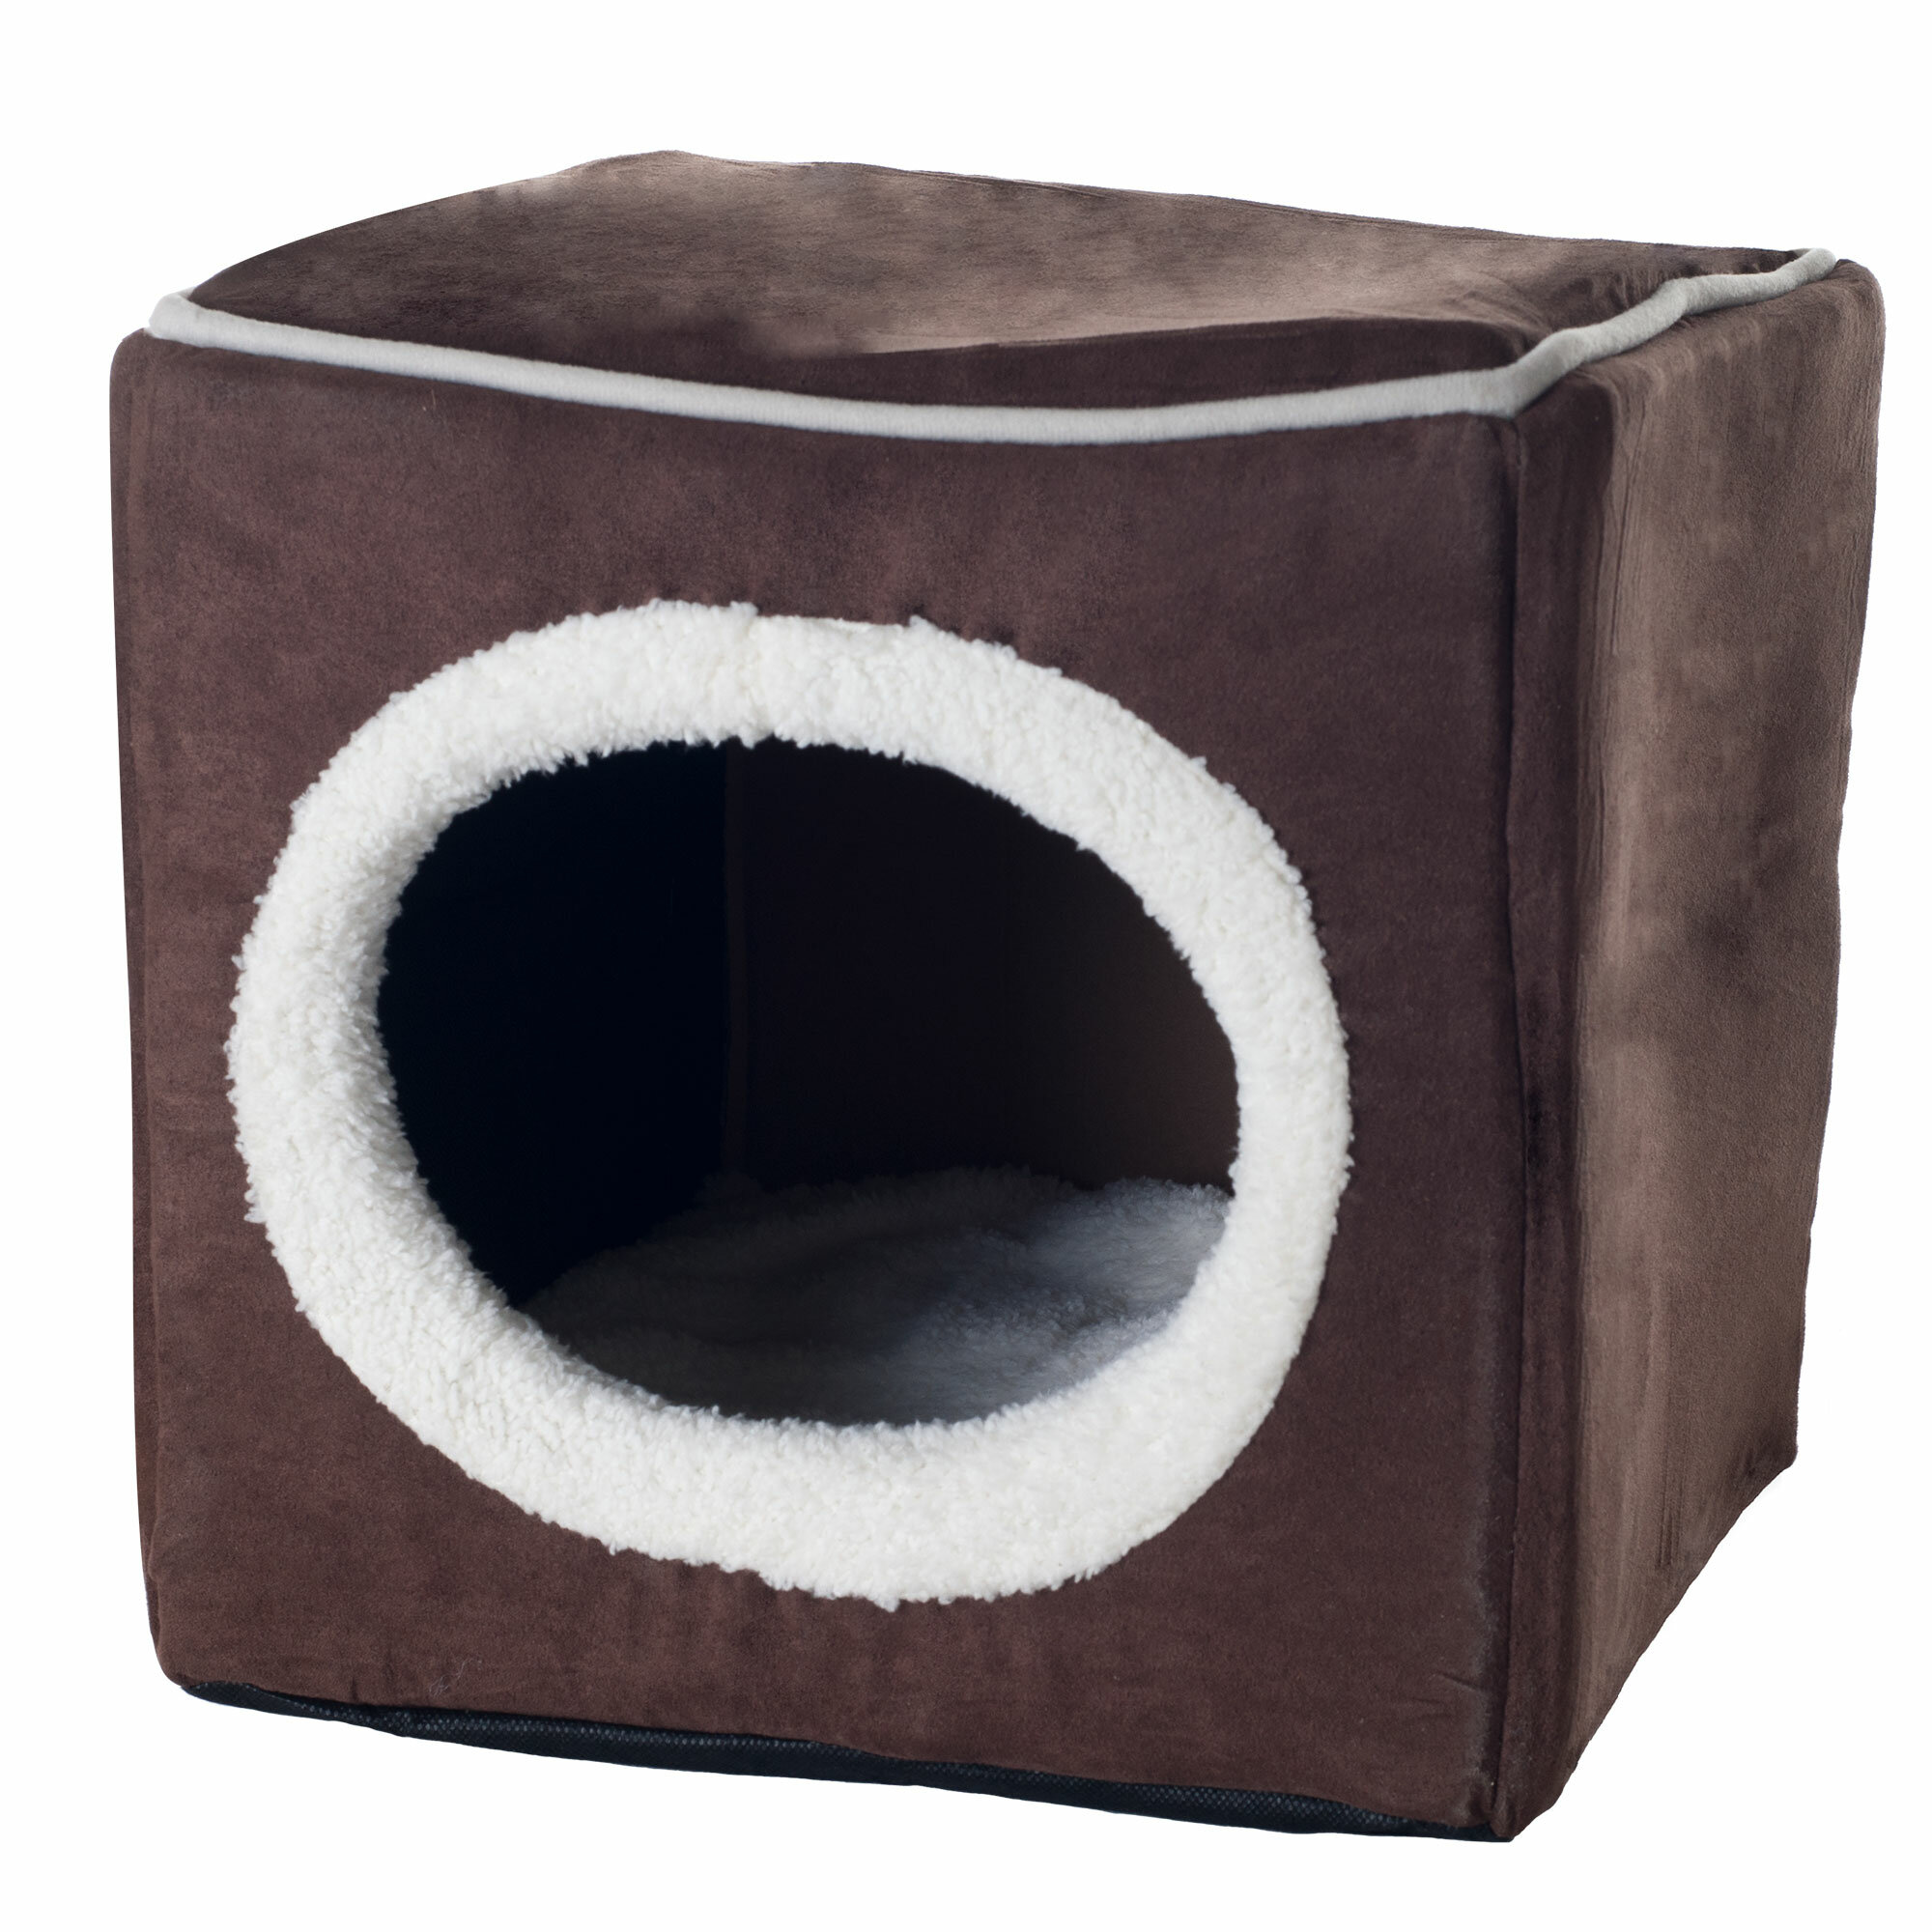 Cat Bed with Pillow /& Reinforced Top Foldable Cat Houses for Indoor Cats,Foldable Cat Houses for cat Tower Easy Travel Cat Cube is Machine Washable Thick Felt Cat Cave for IKEA Shelf